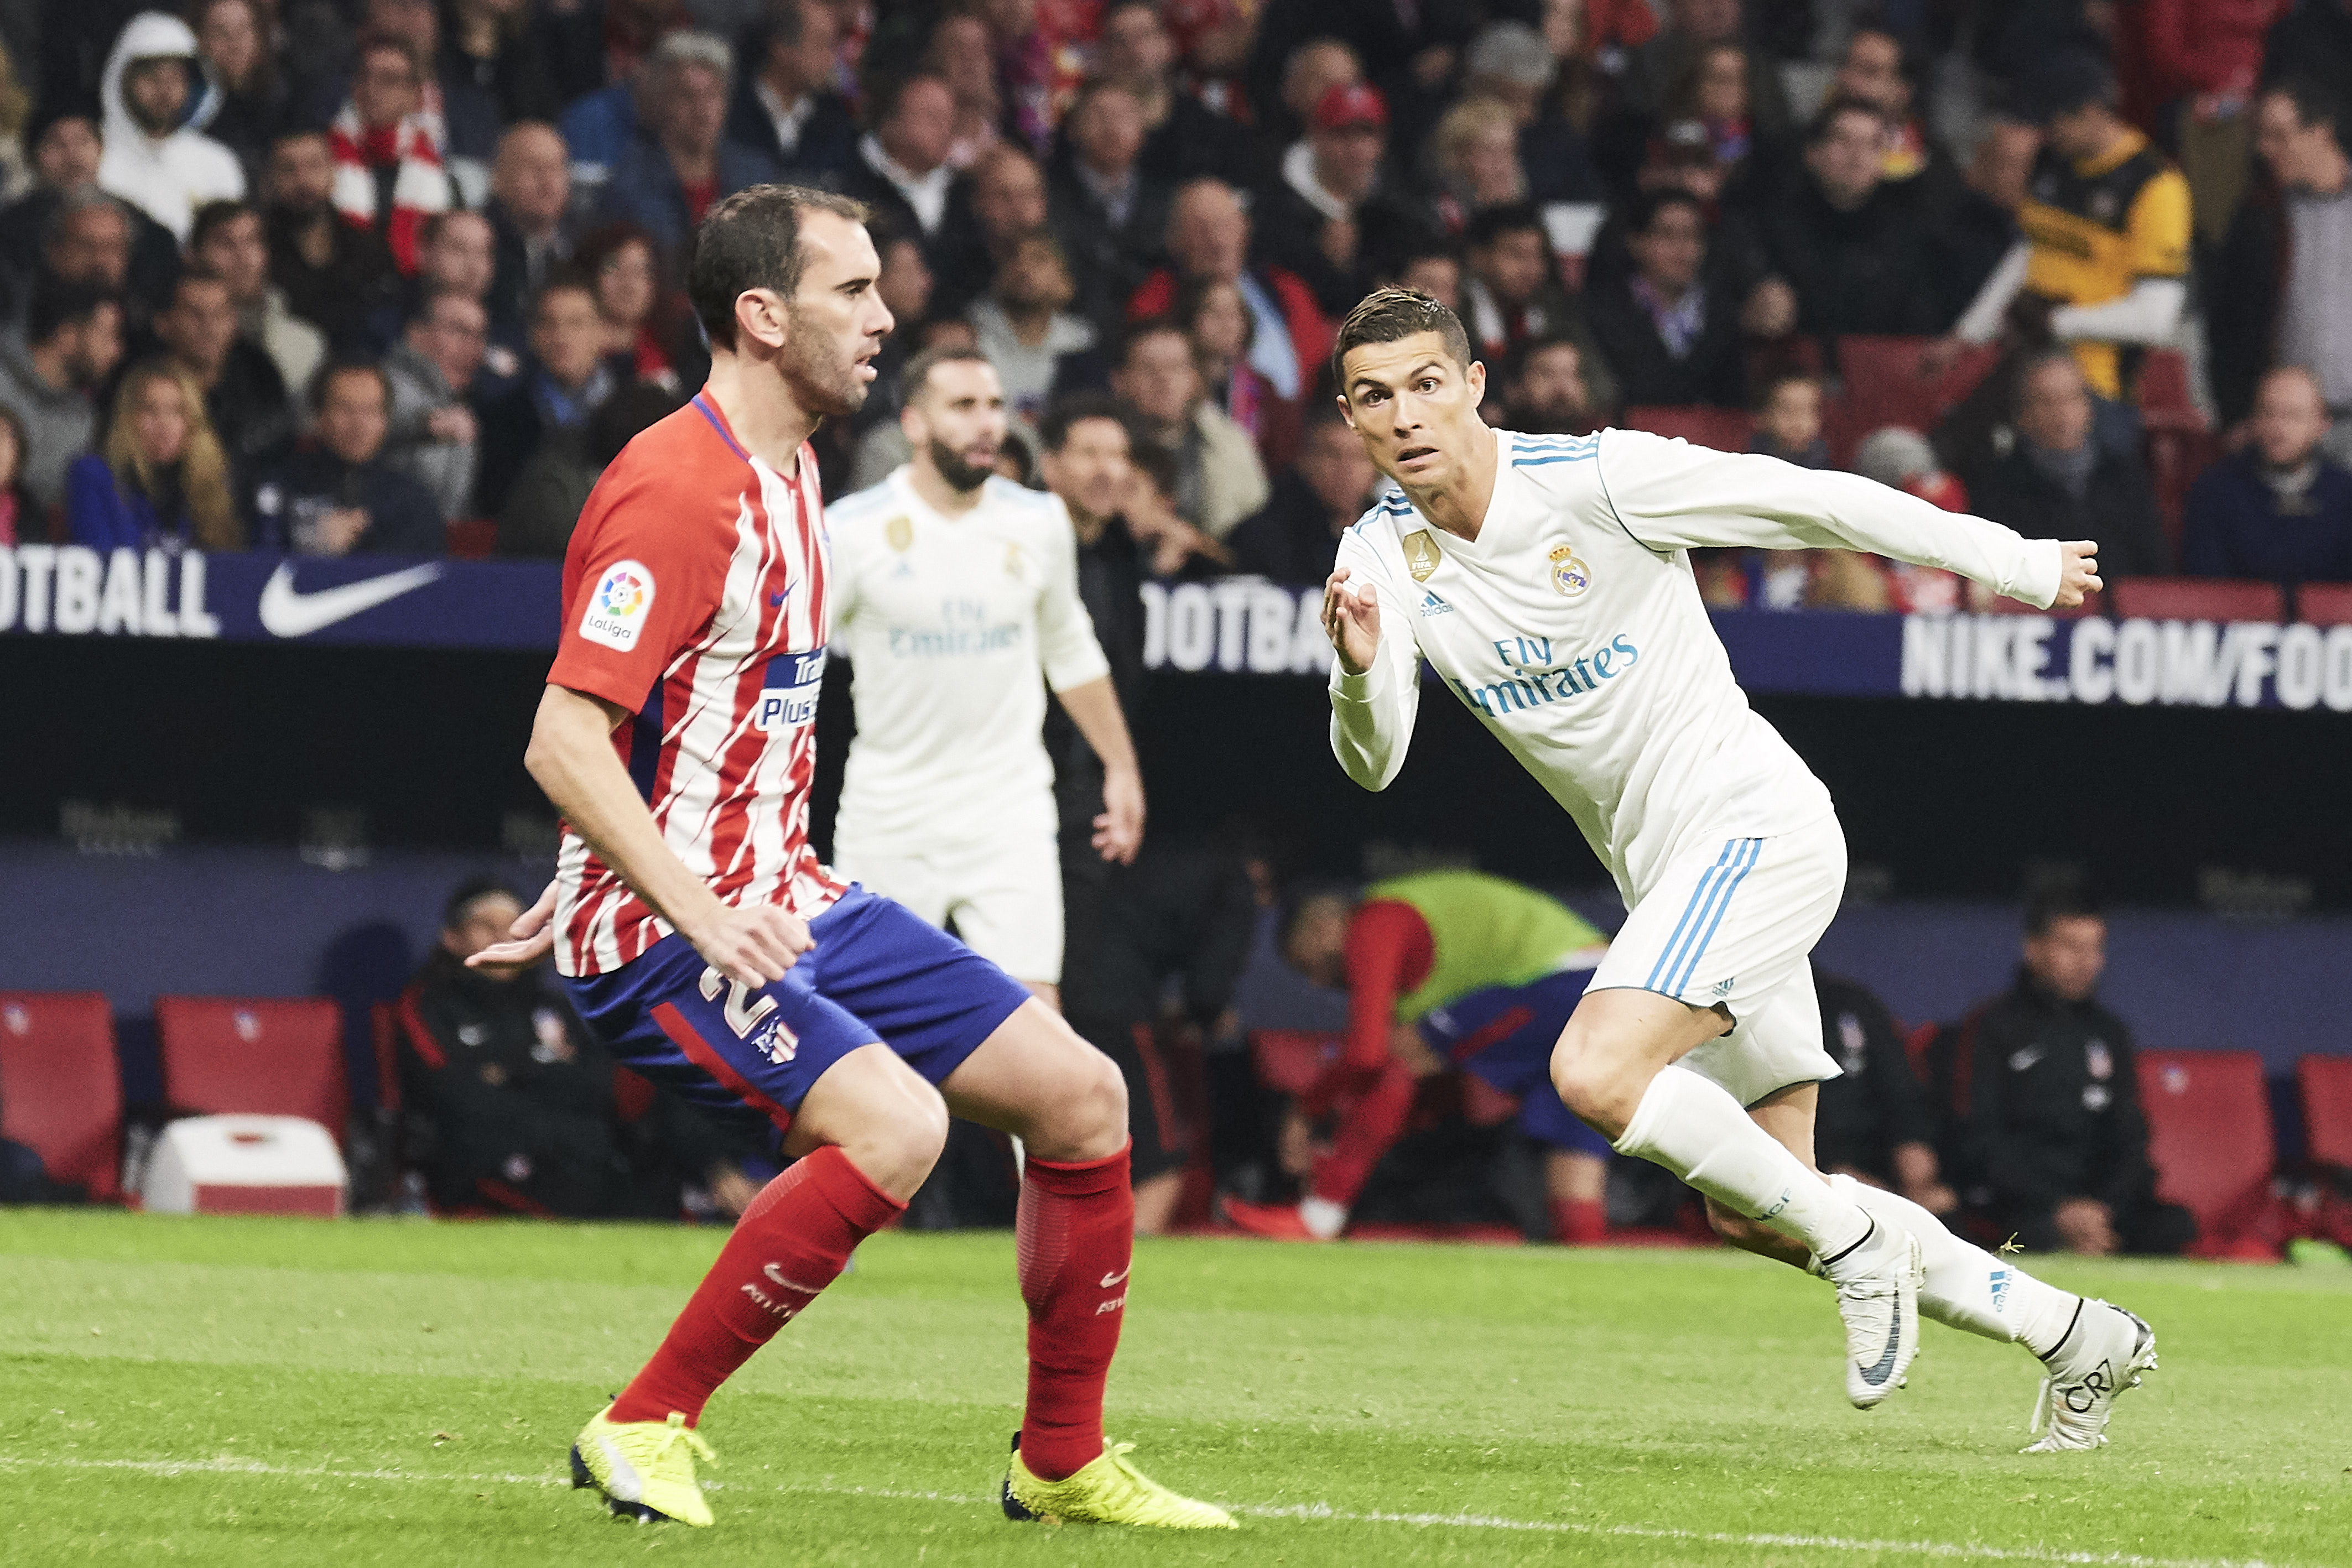 Godin and Ronaldo during the Madrid derby. Image: PA